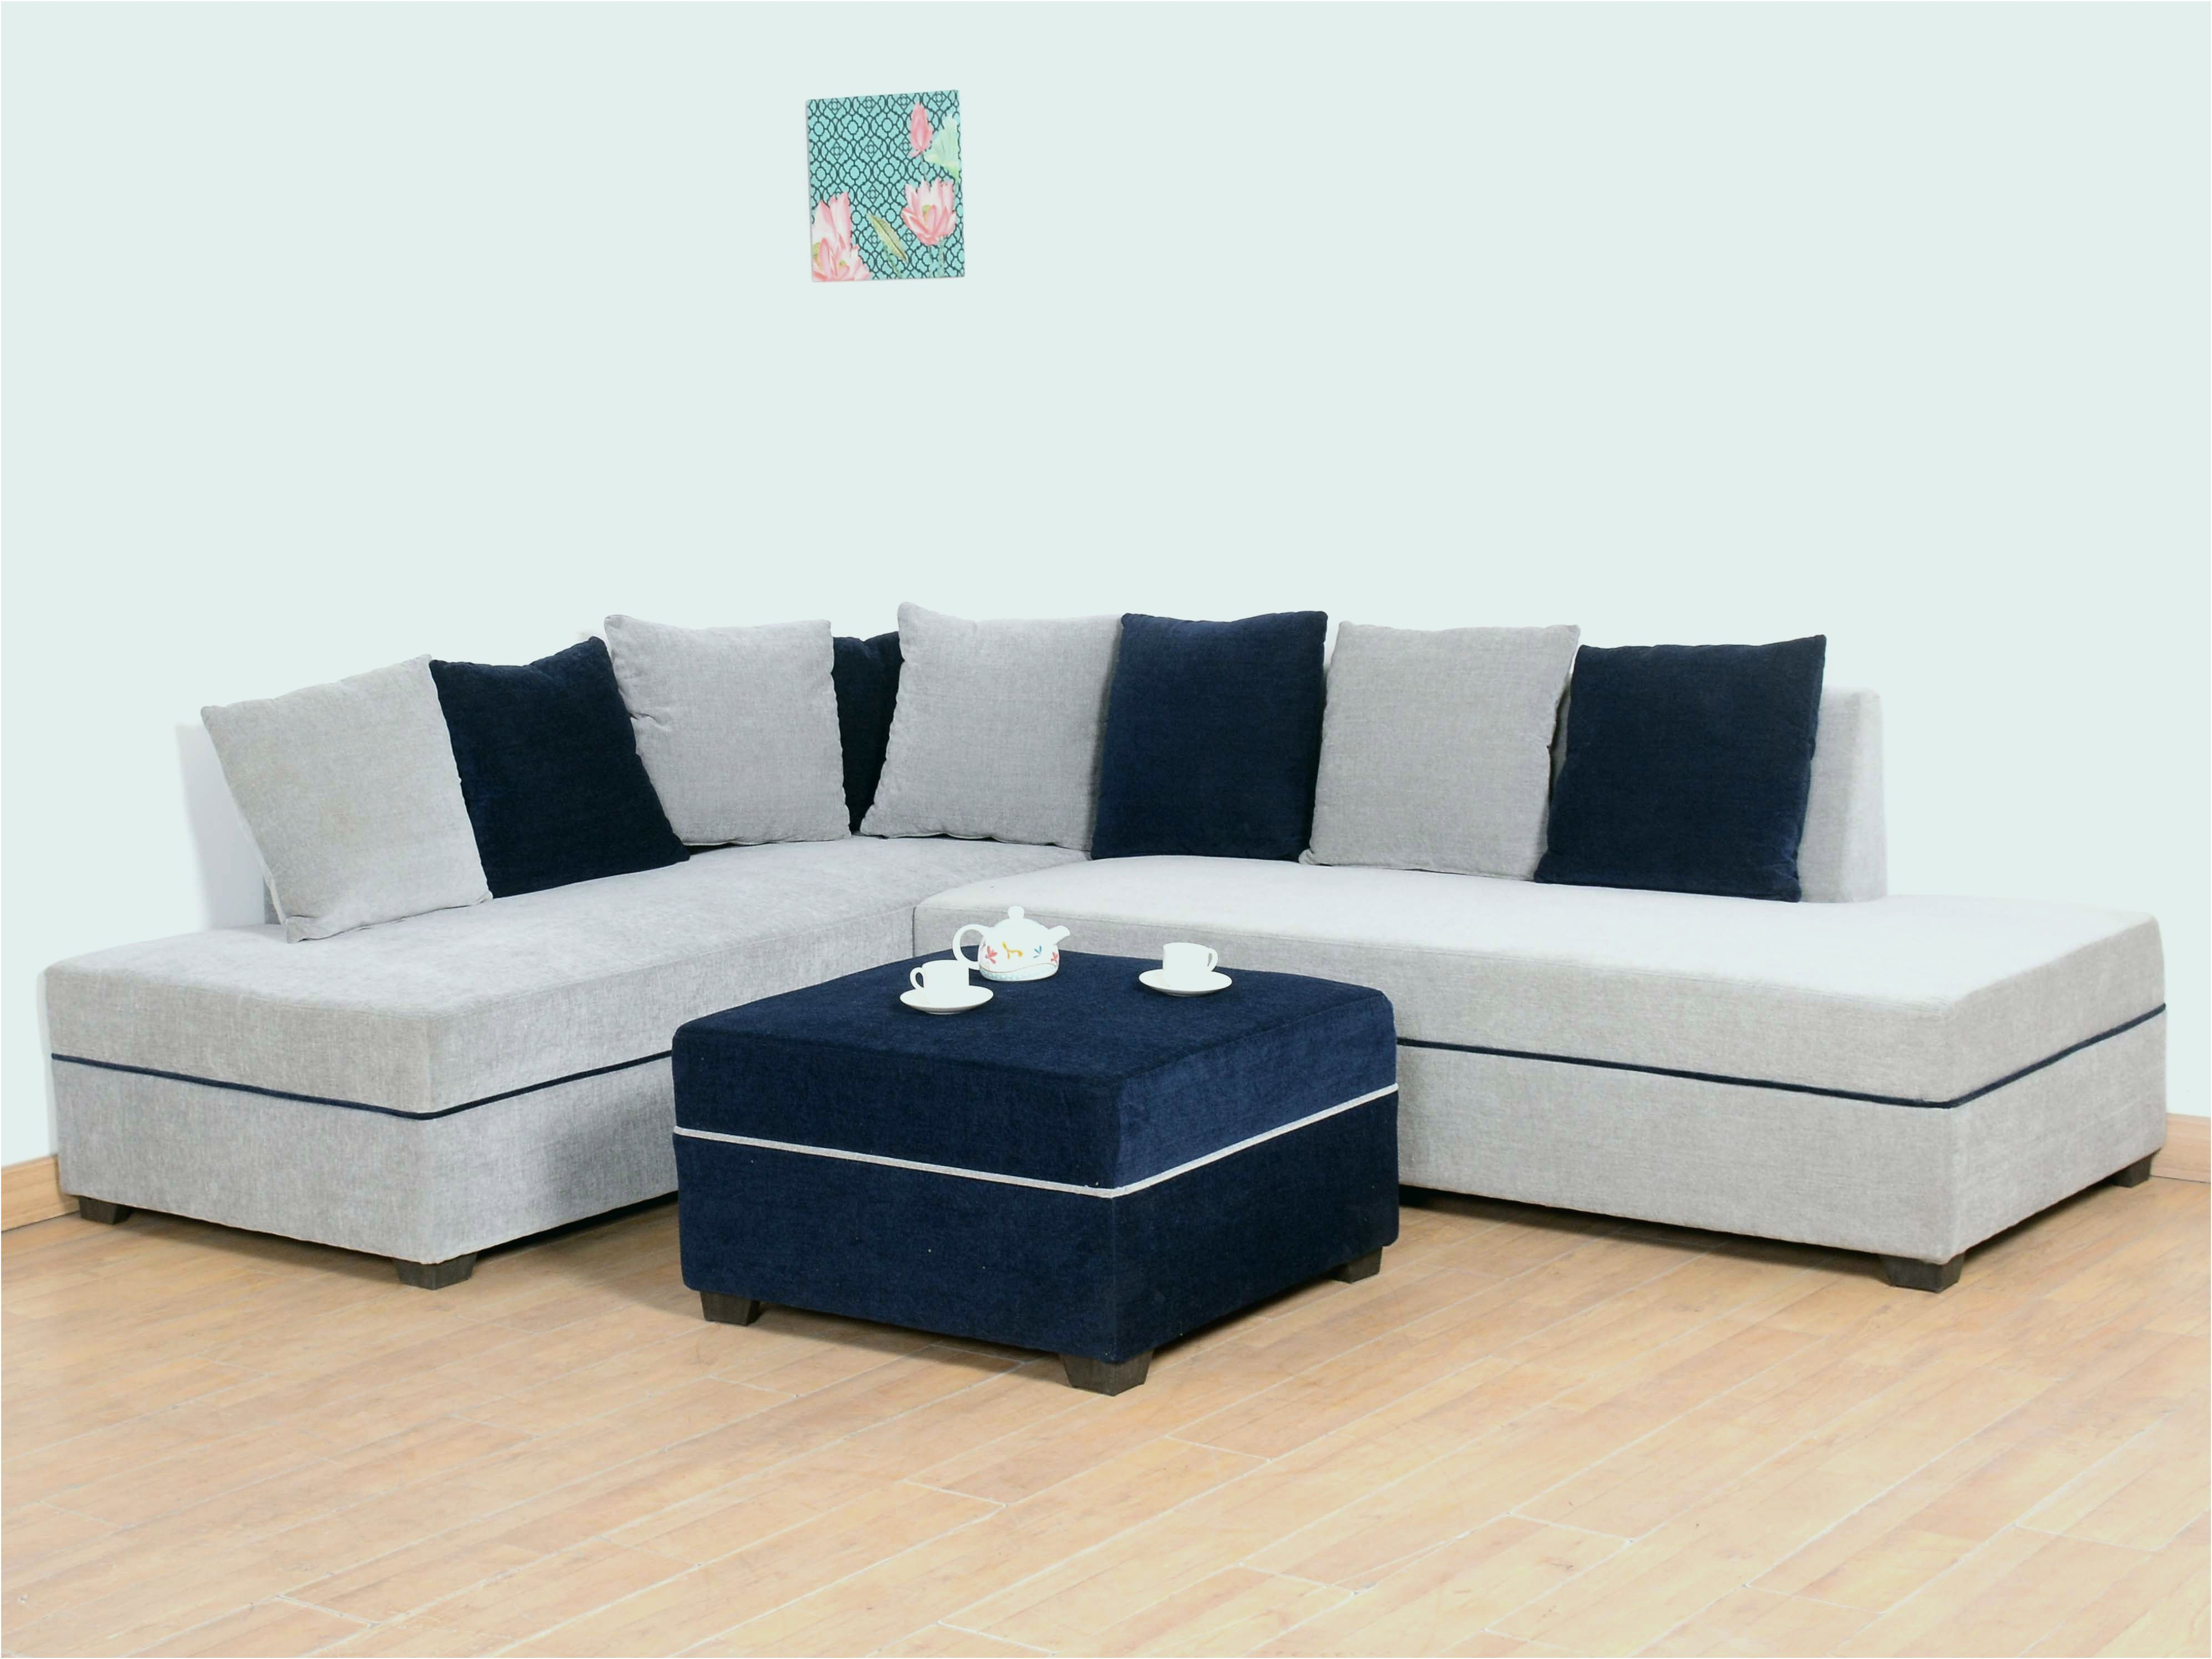 Sympathisch Otto Sofa Grau Couch Mobel Couch With Ottoman